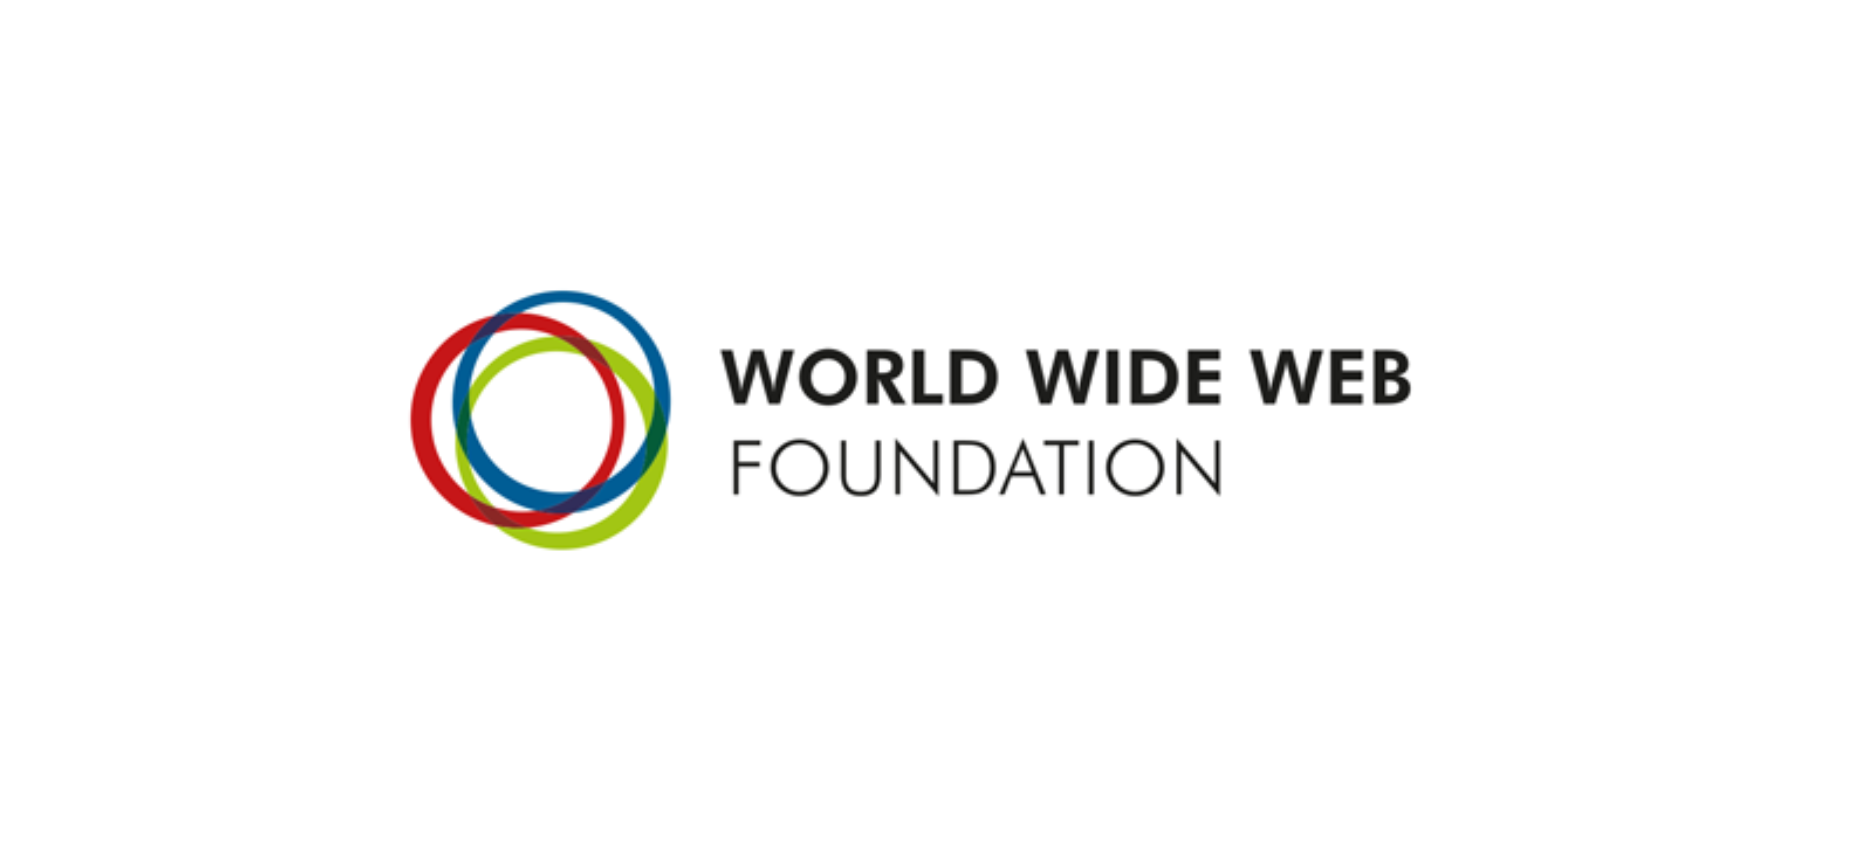 WWW Foundation